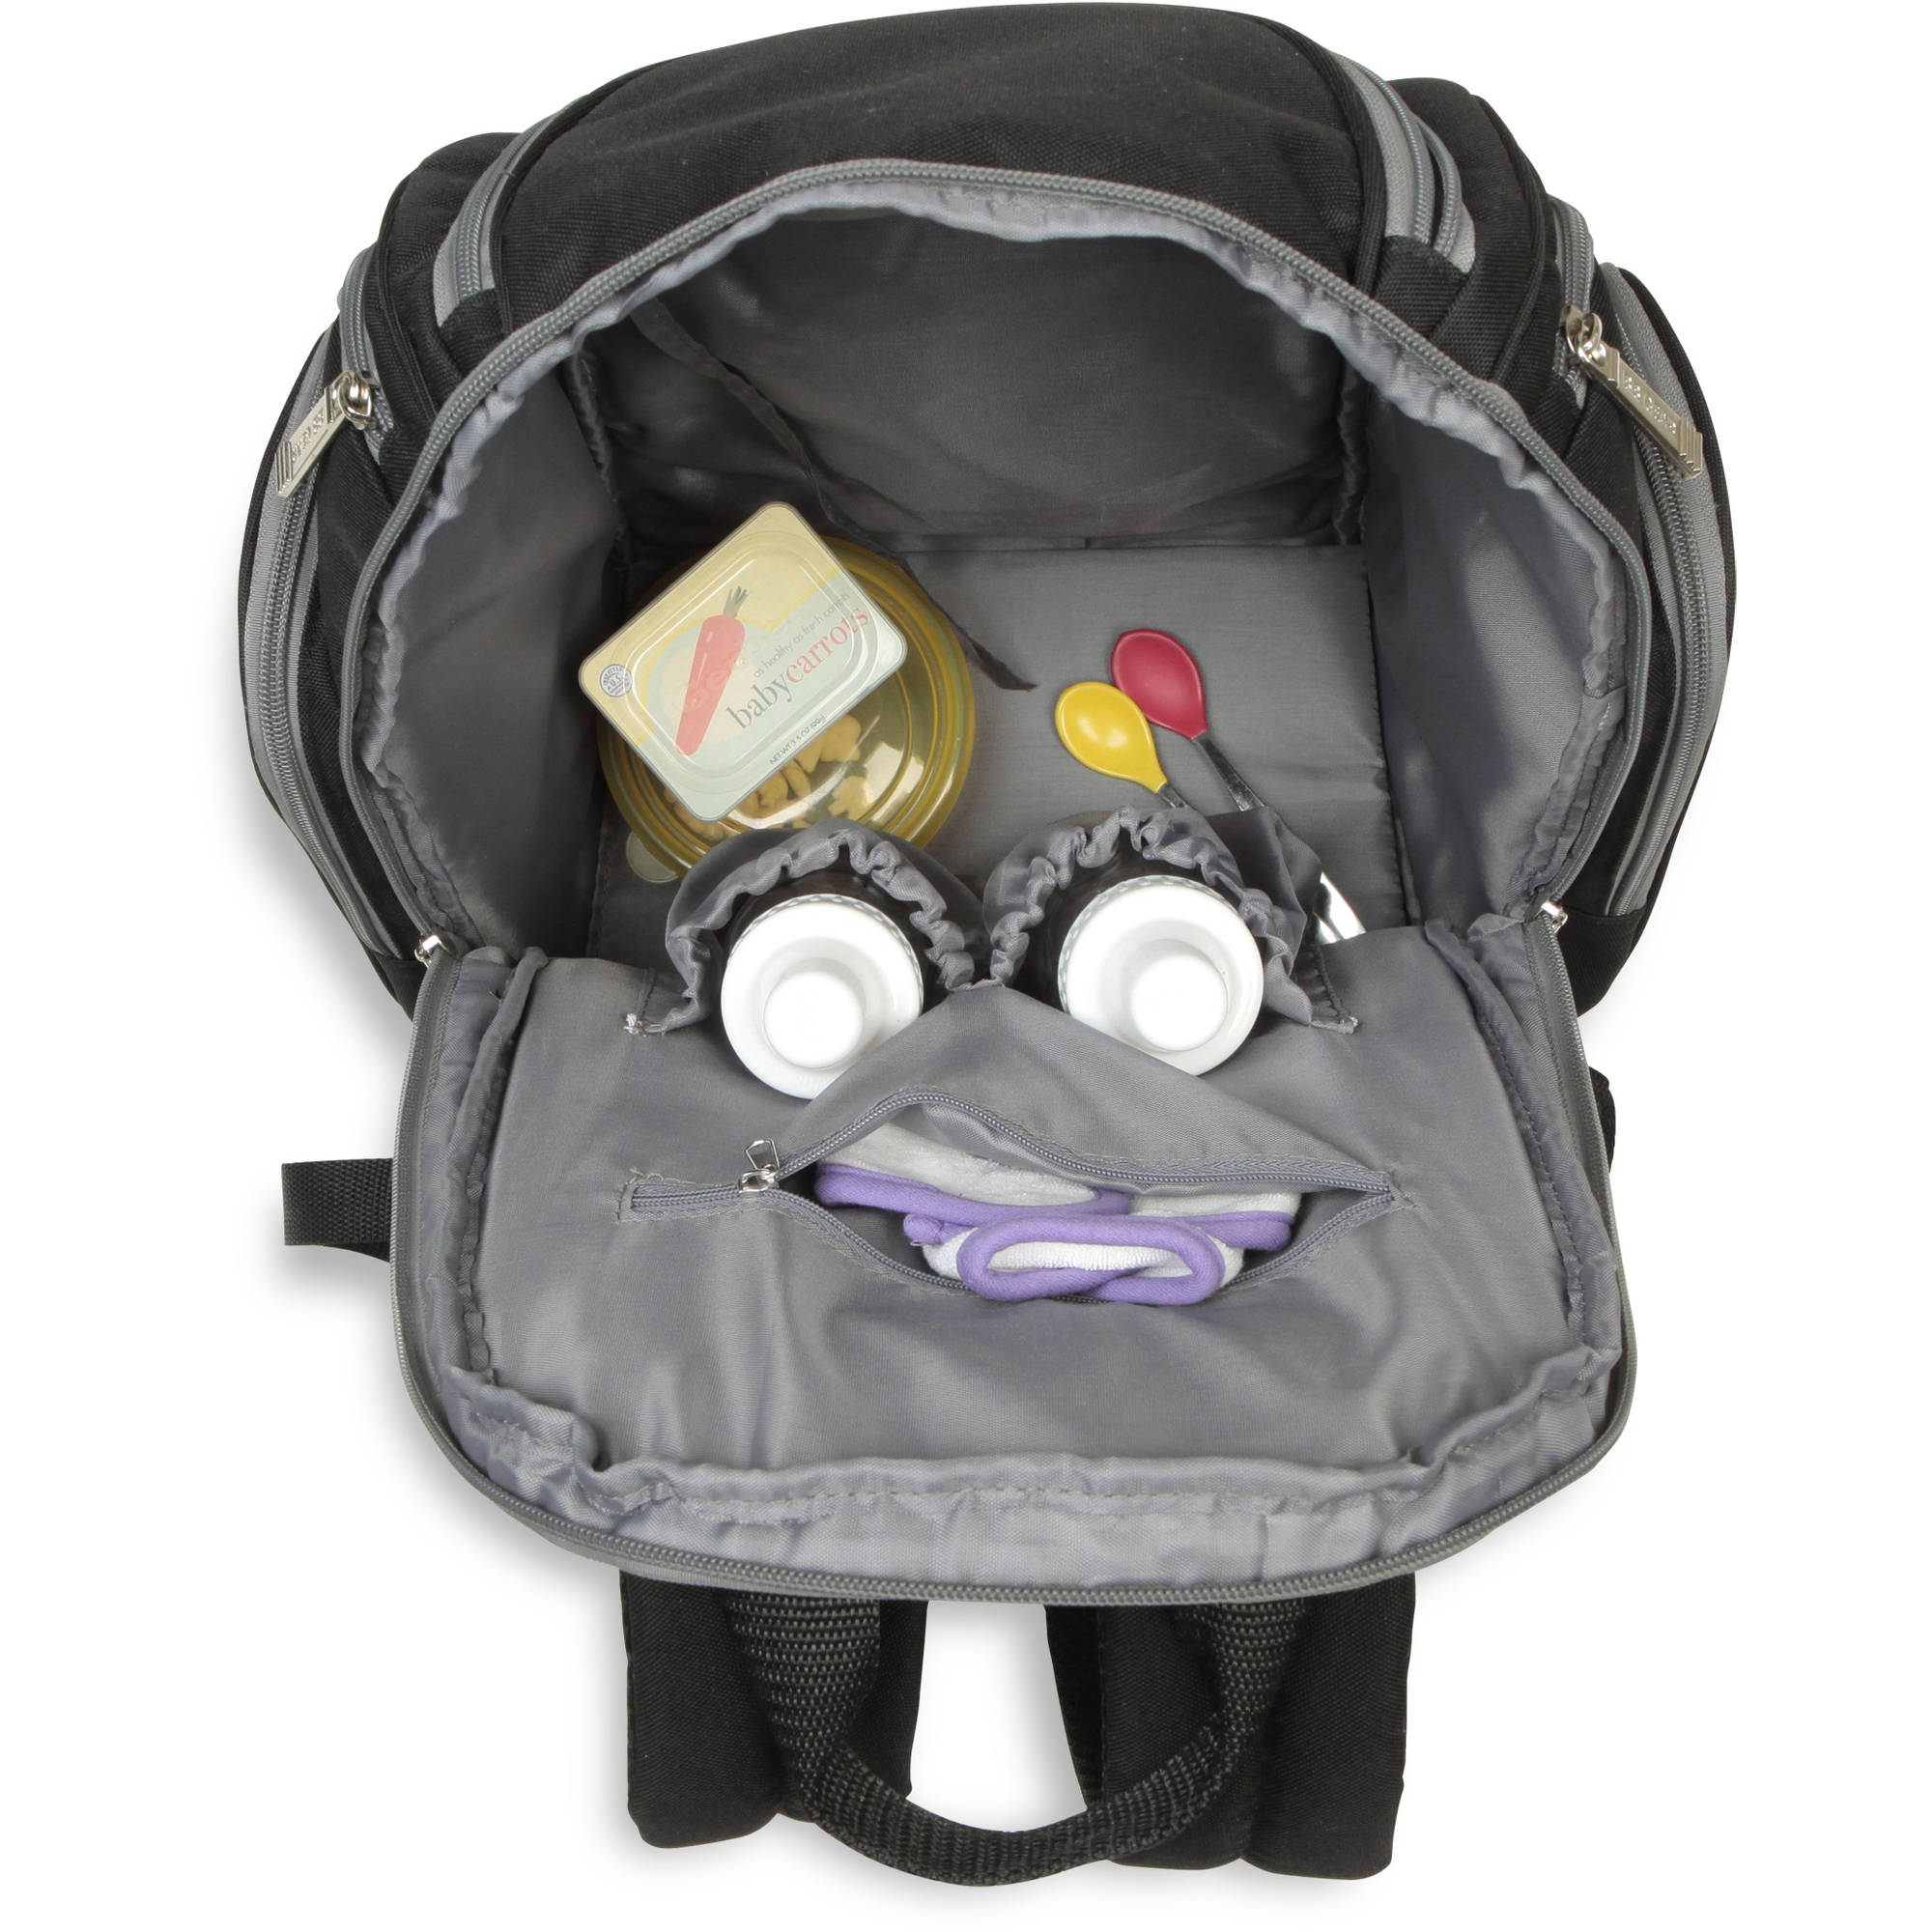 Baby Trend Expedition Jogging Stroller with Bonus Backpack Diaper